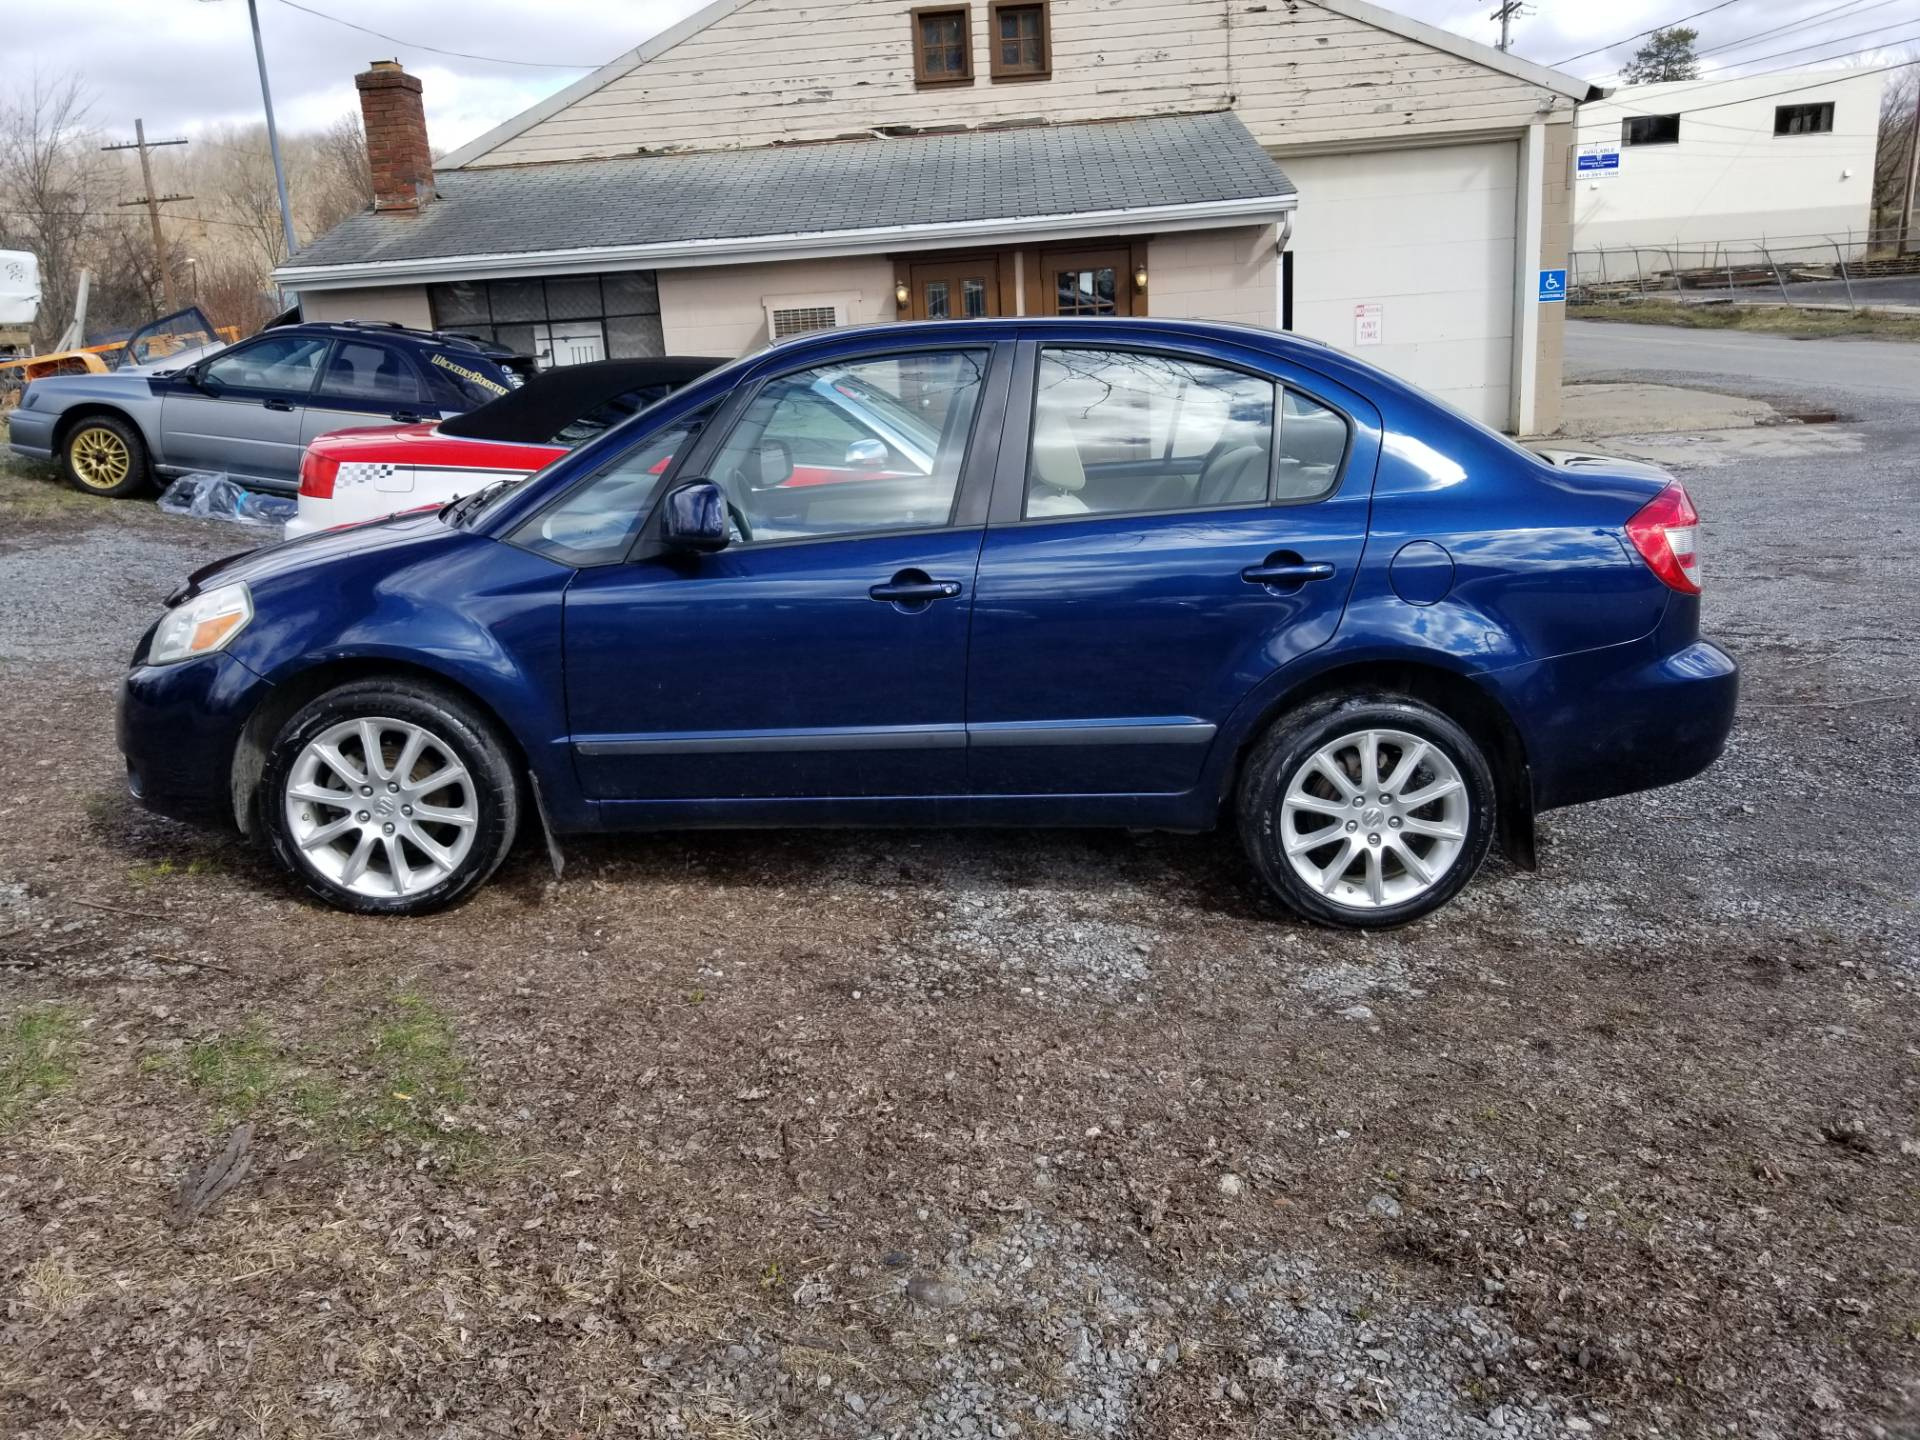 2011 Suzuki SX4 in Harmony, Pennsylvania - Photo 2